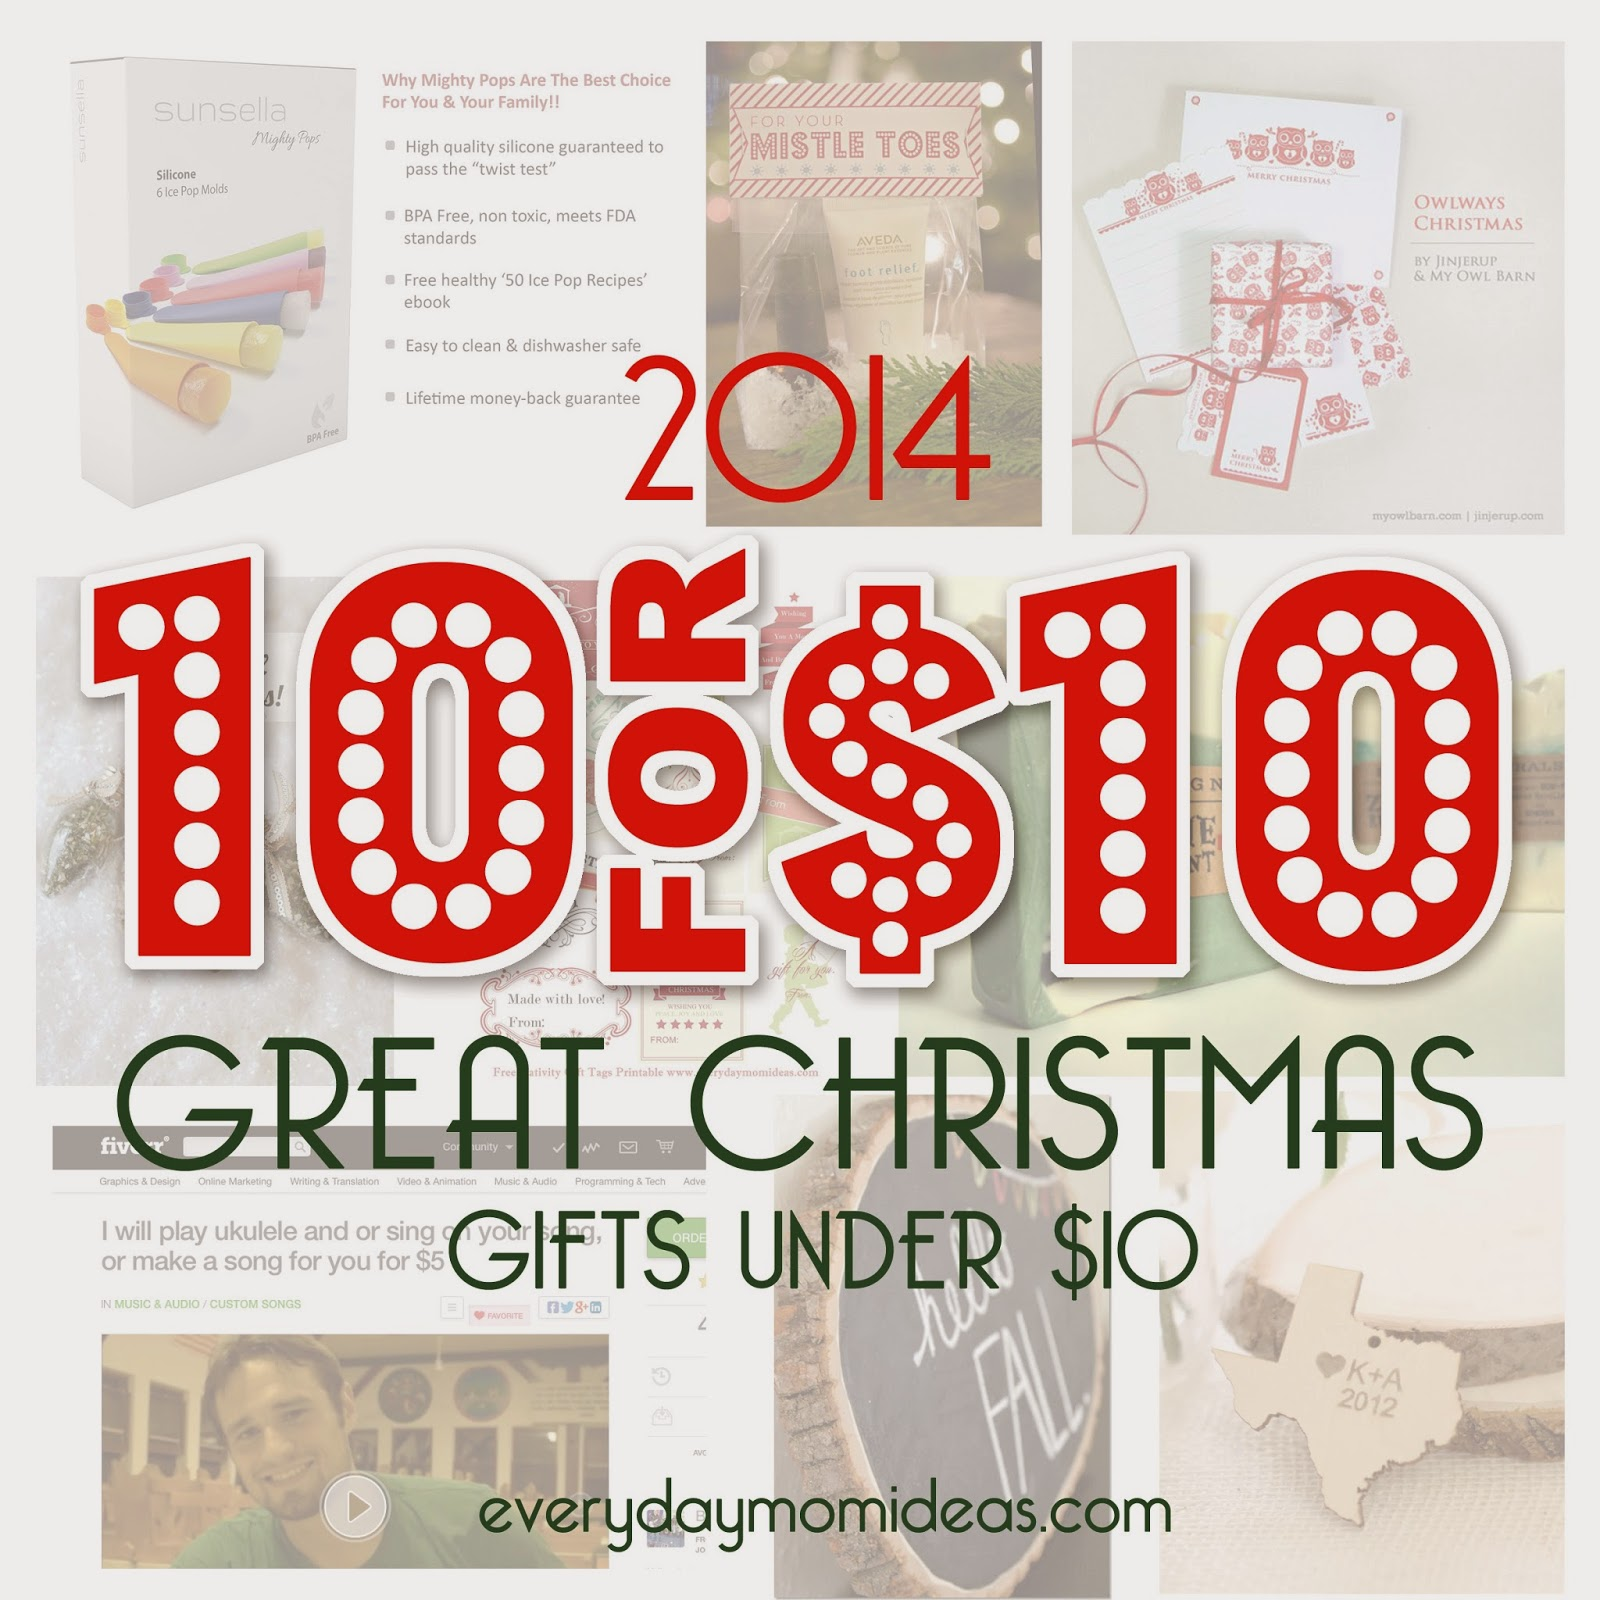 Christmas gift ideas for $10 or less